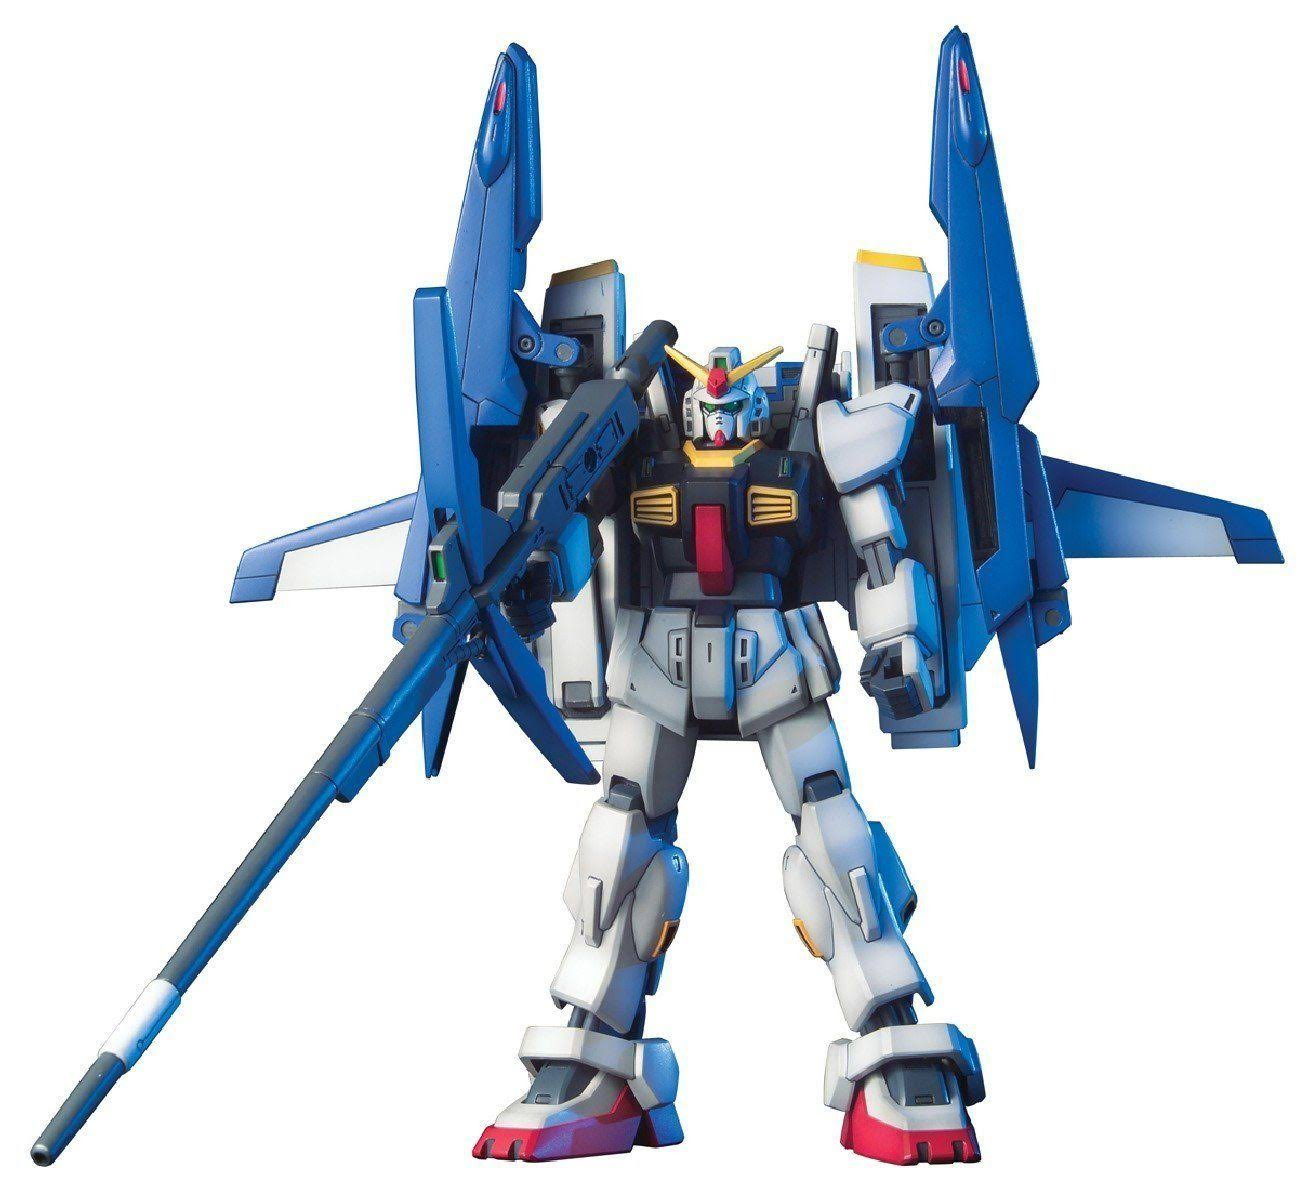 Bandai HGUC Mobile Suit Z Gundam Super Gundam Model Kit - 1:144 Scale